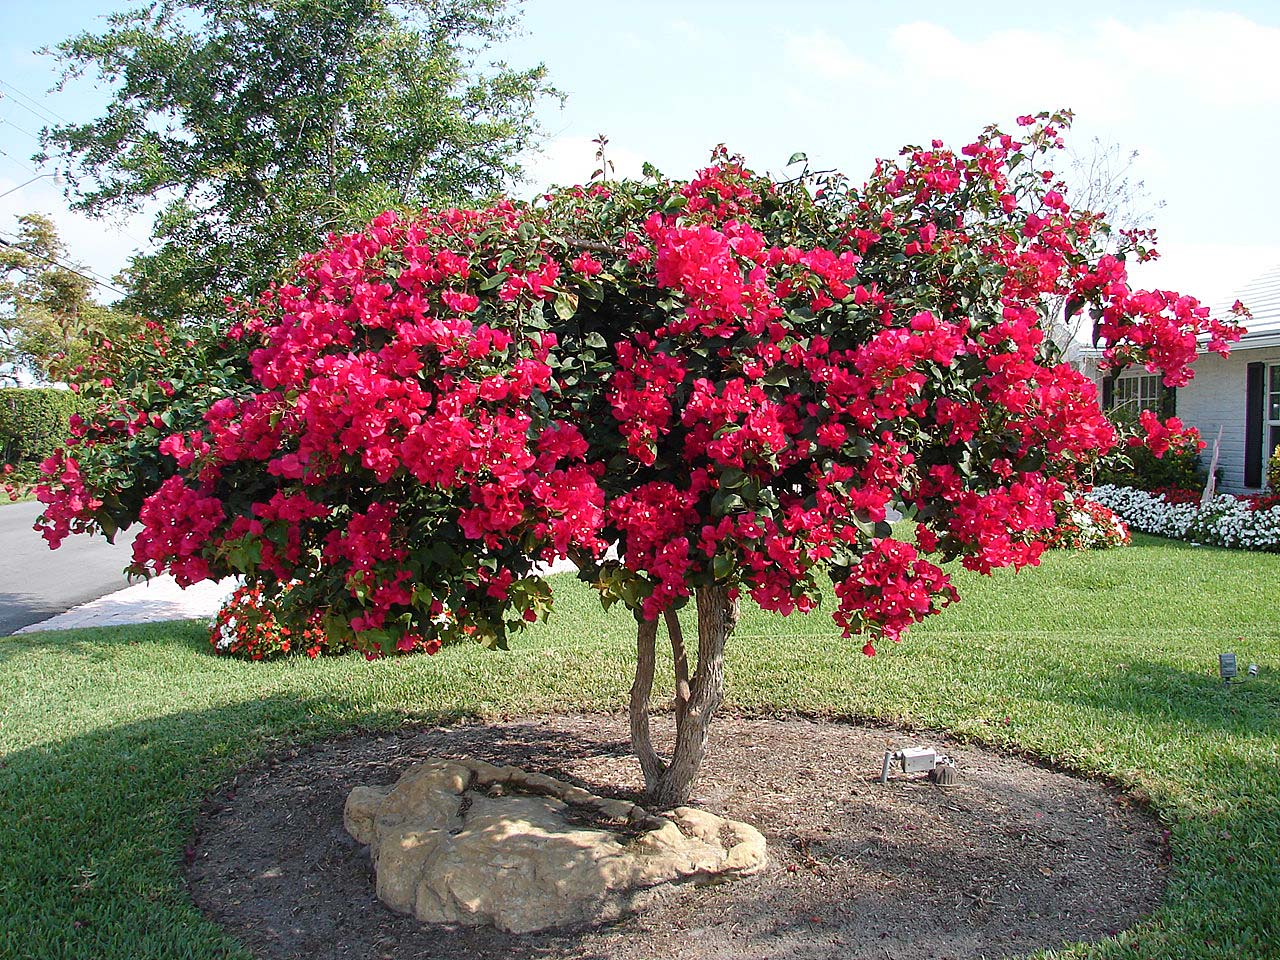 The hot pink color you see in the photo are the bracts. In the open landscape, you need to closely examine a bract to see the small white flowers at the ...